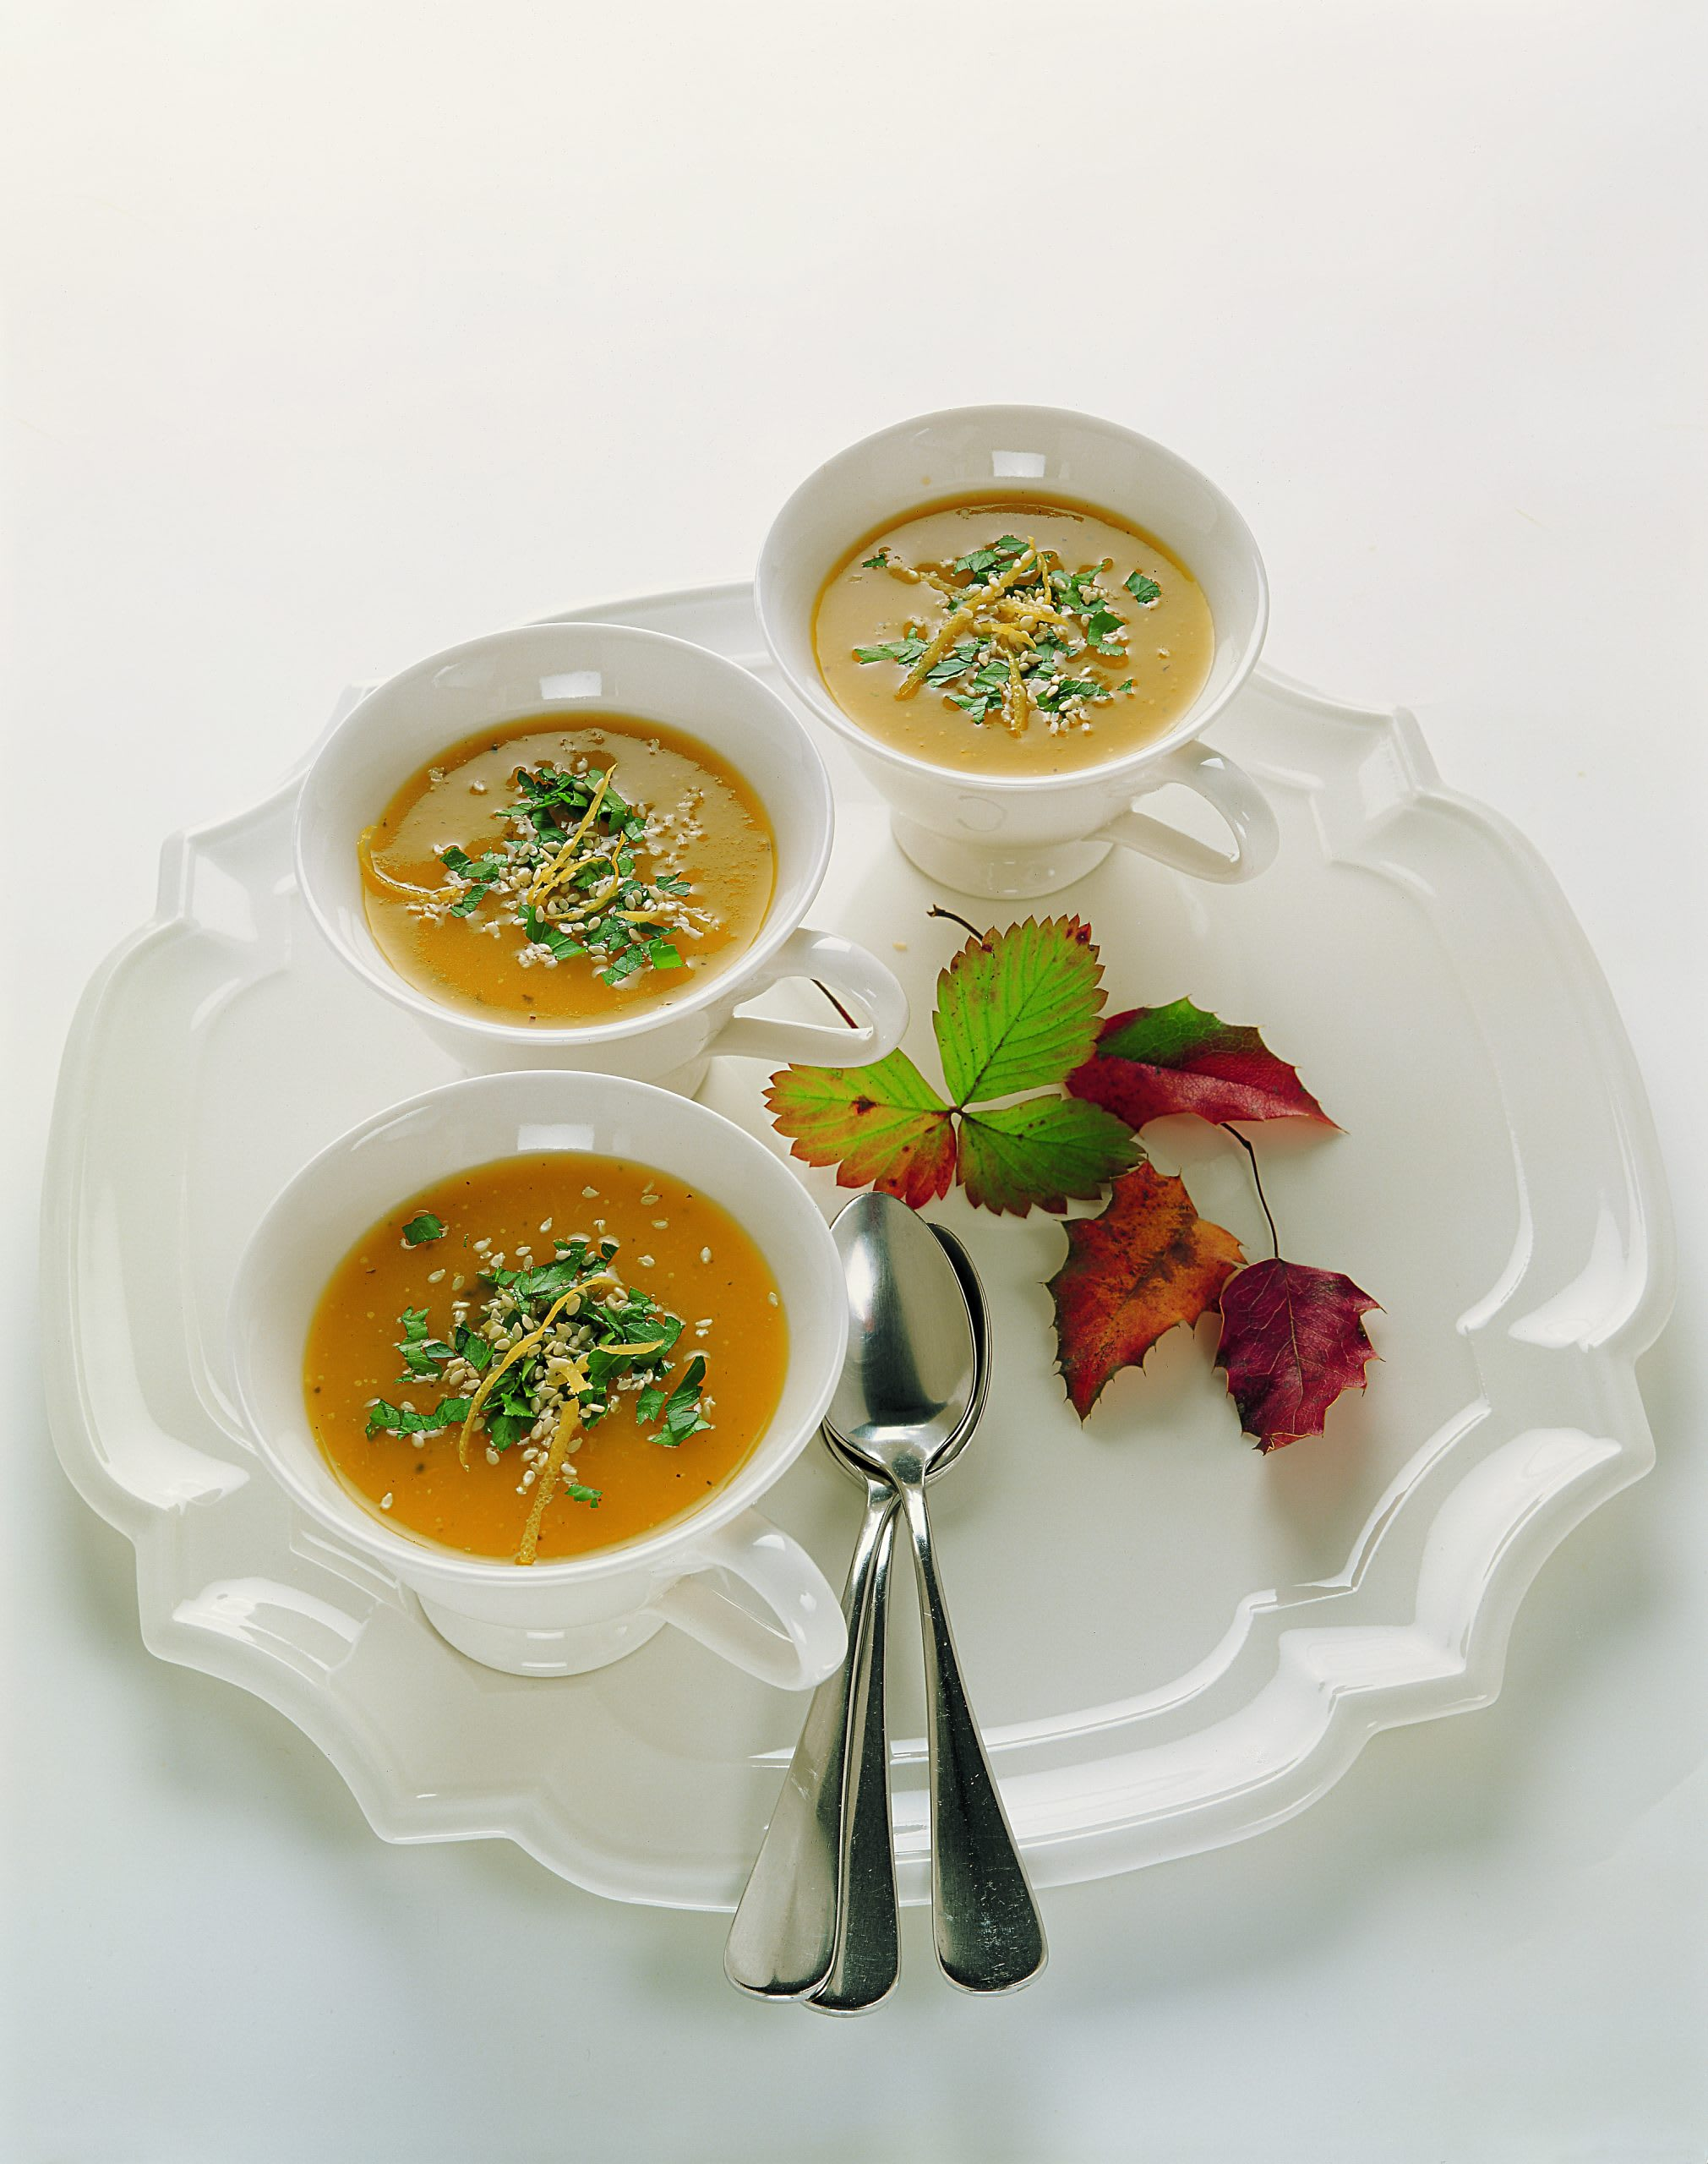 Kürbis-Zitronen-Suppe